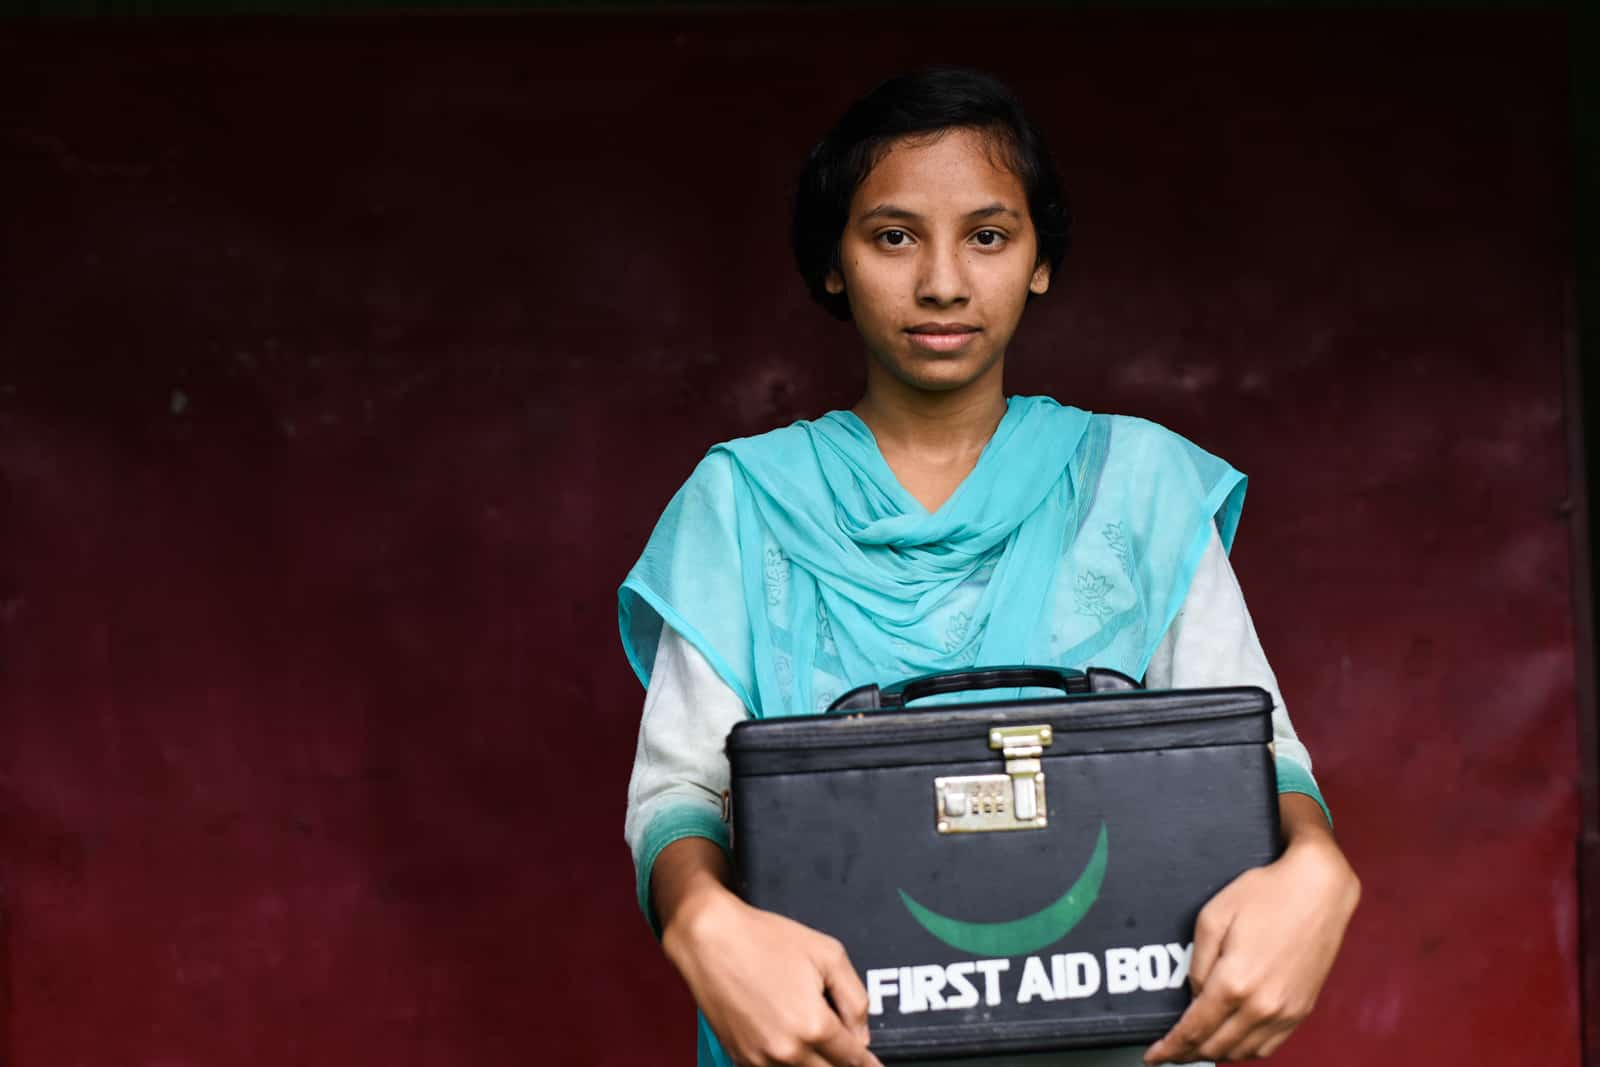 A teenage girl holds a medical kit